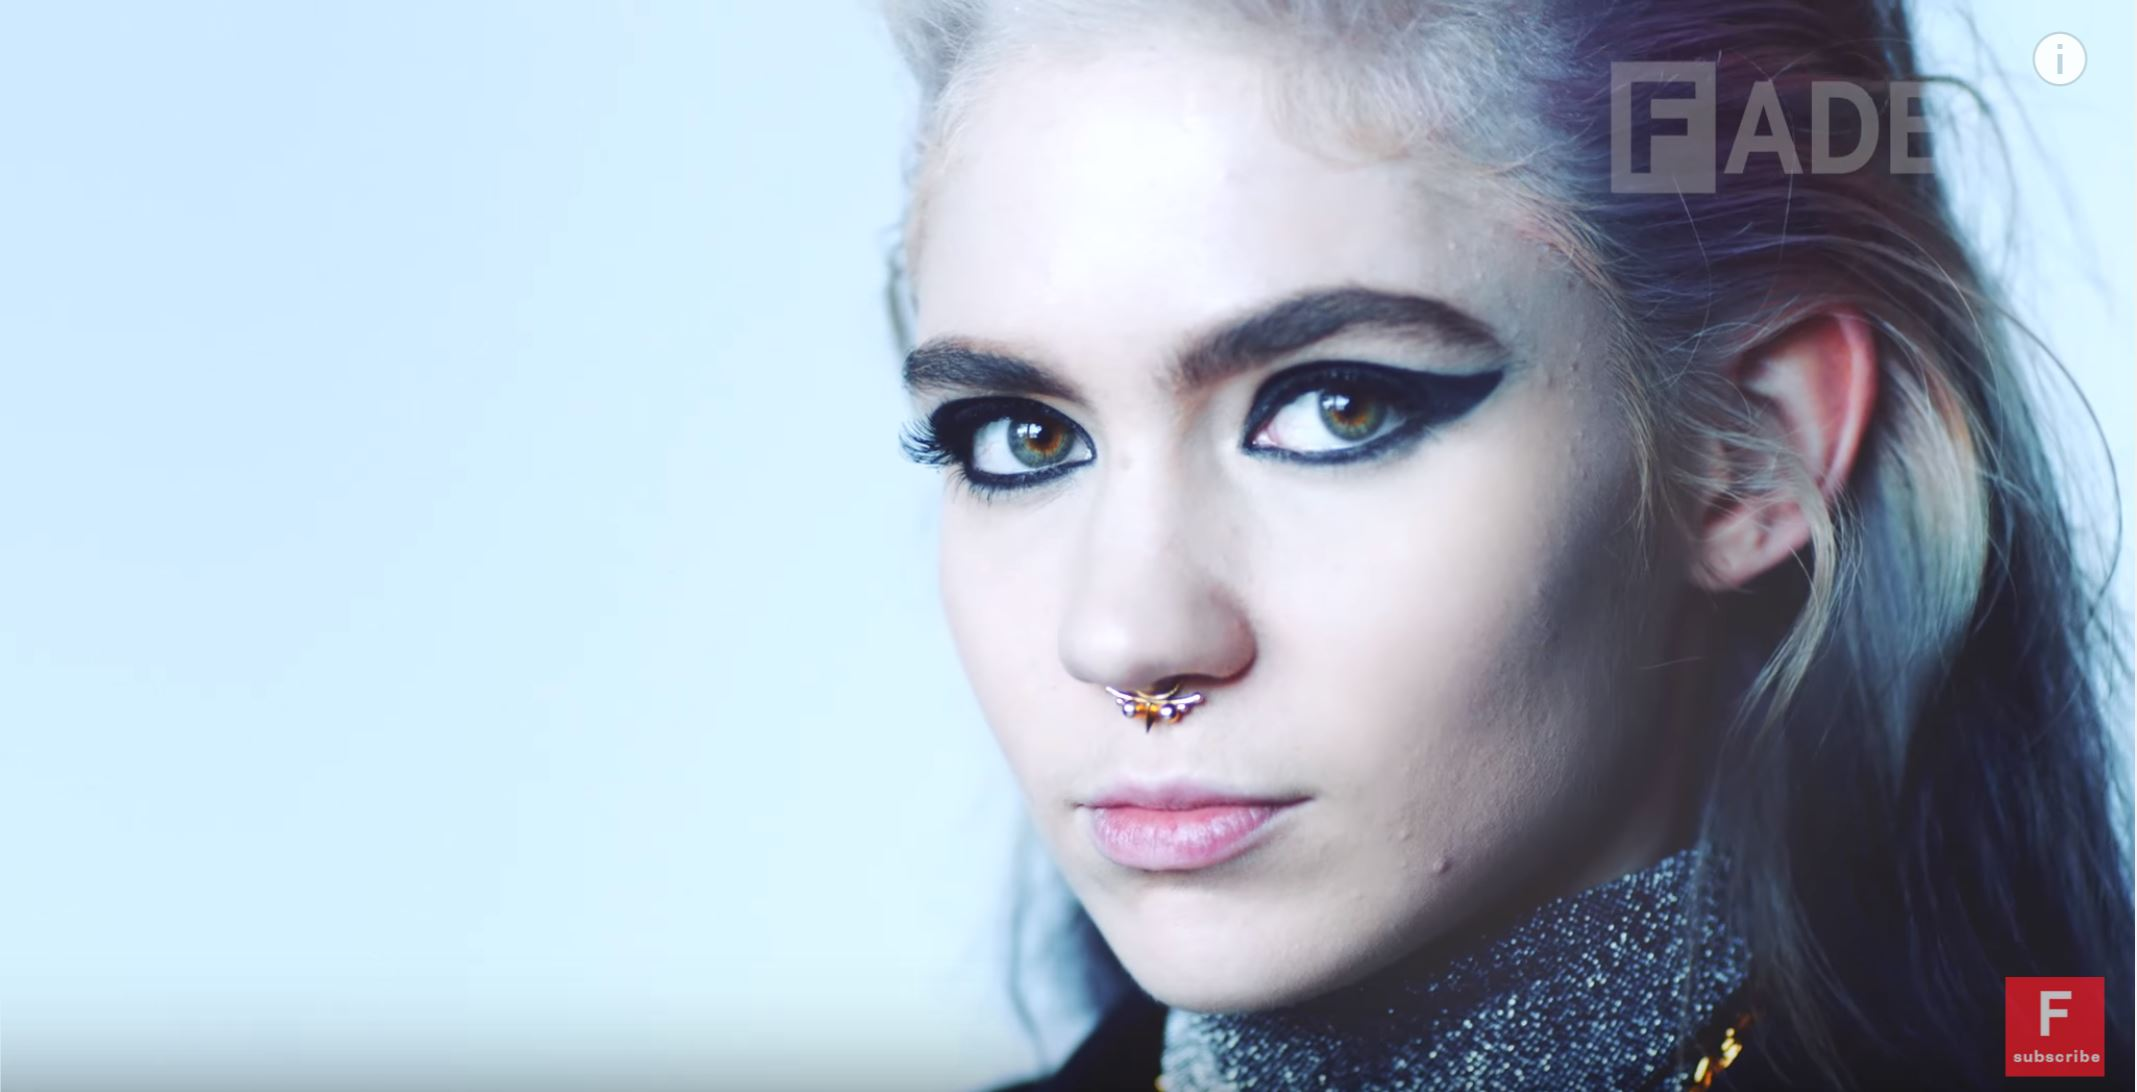 Check Out Fader´s Documentary On Grimes (Art Angel)